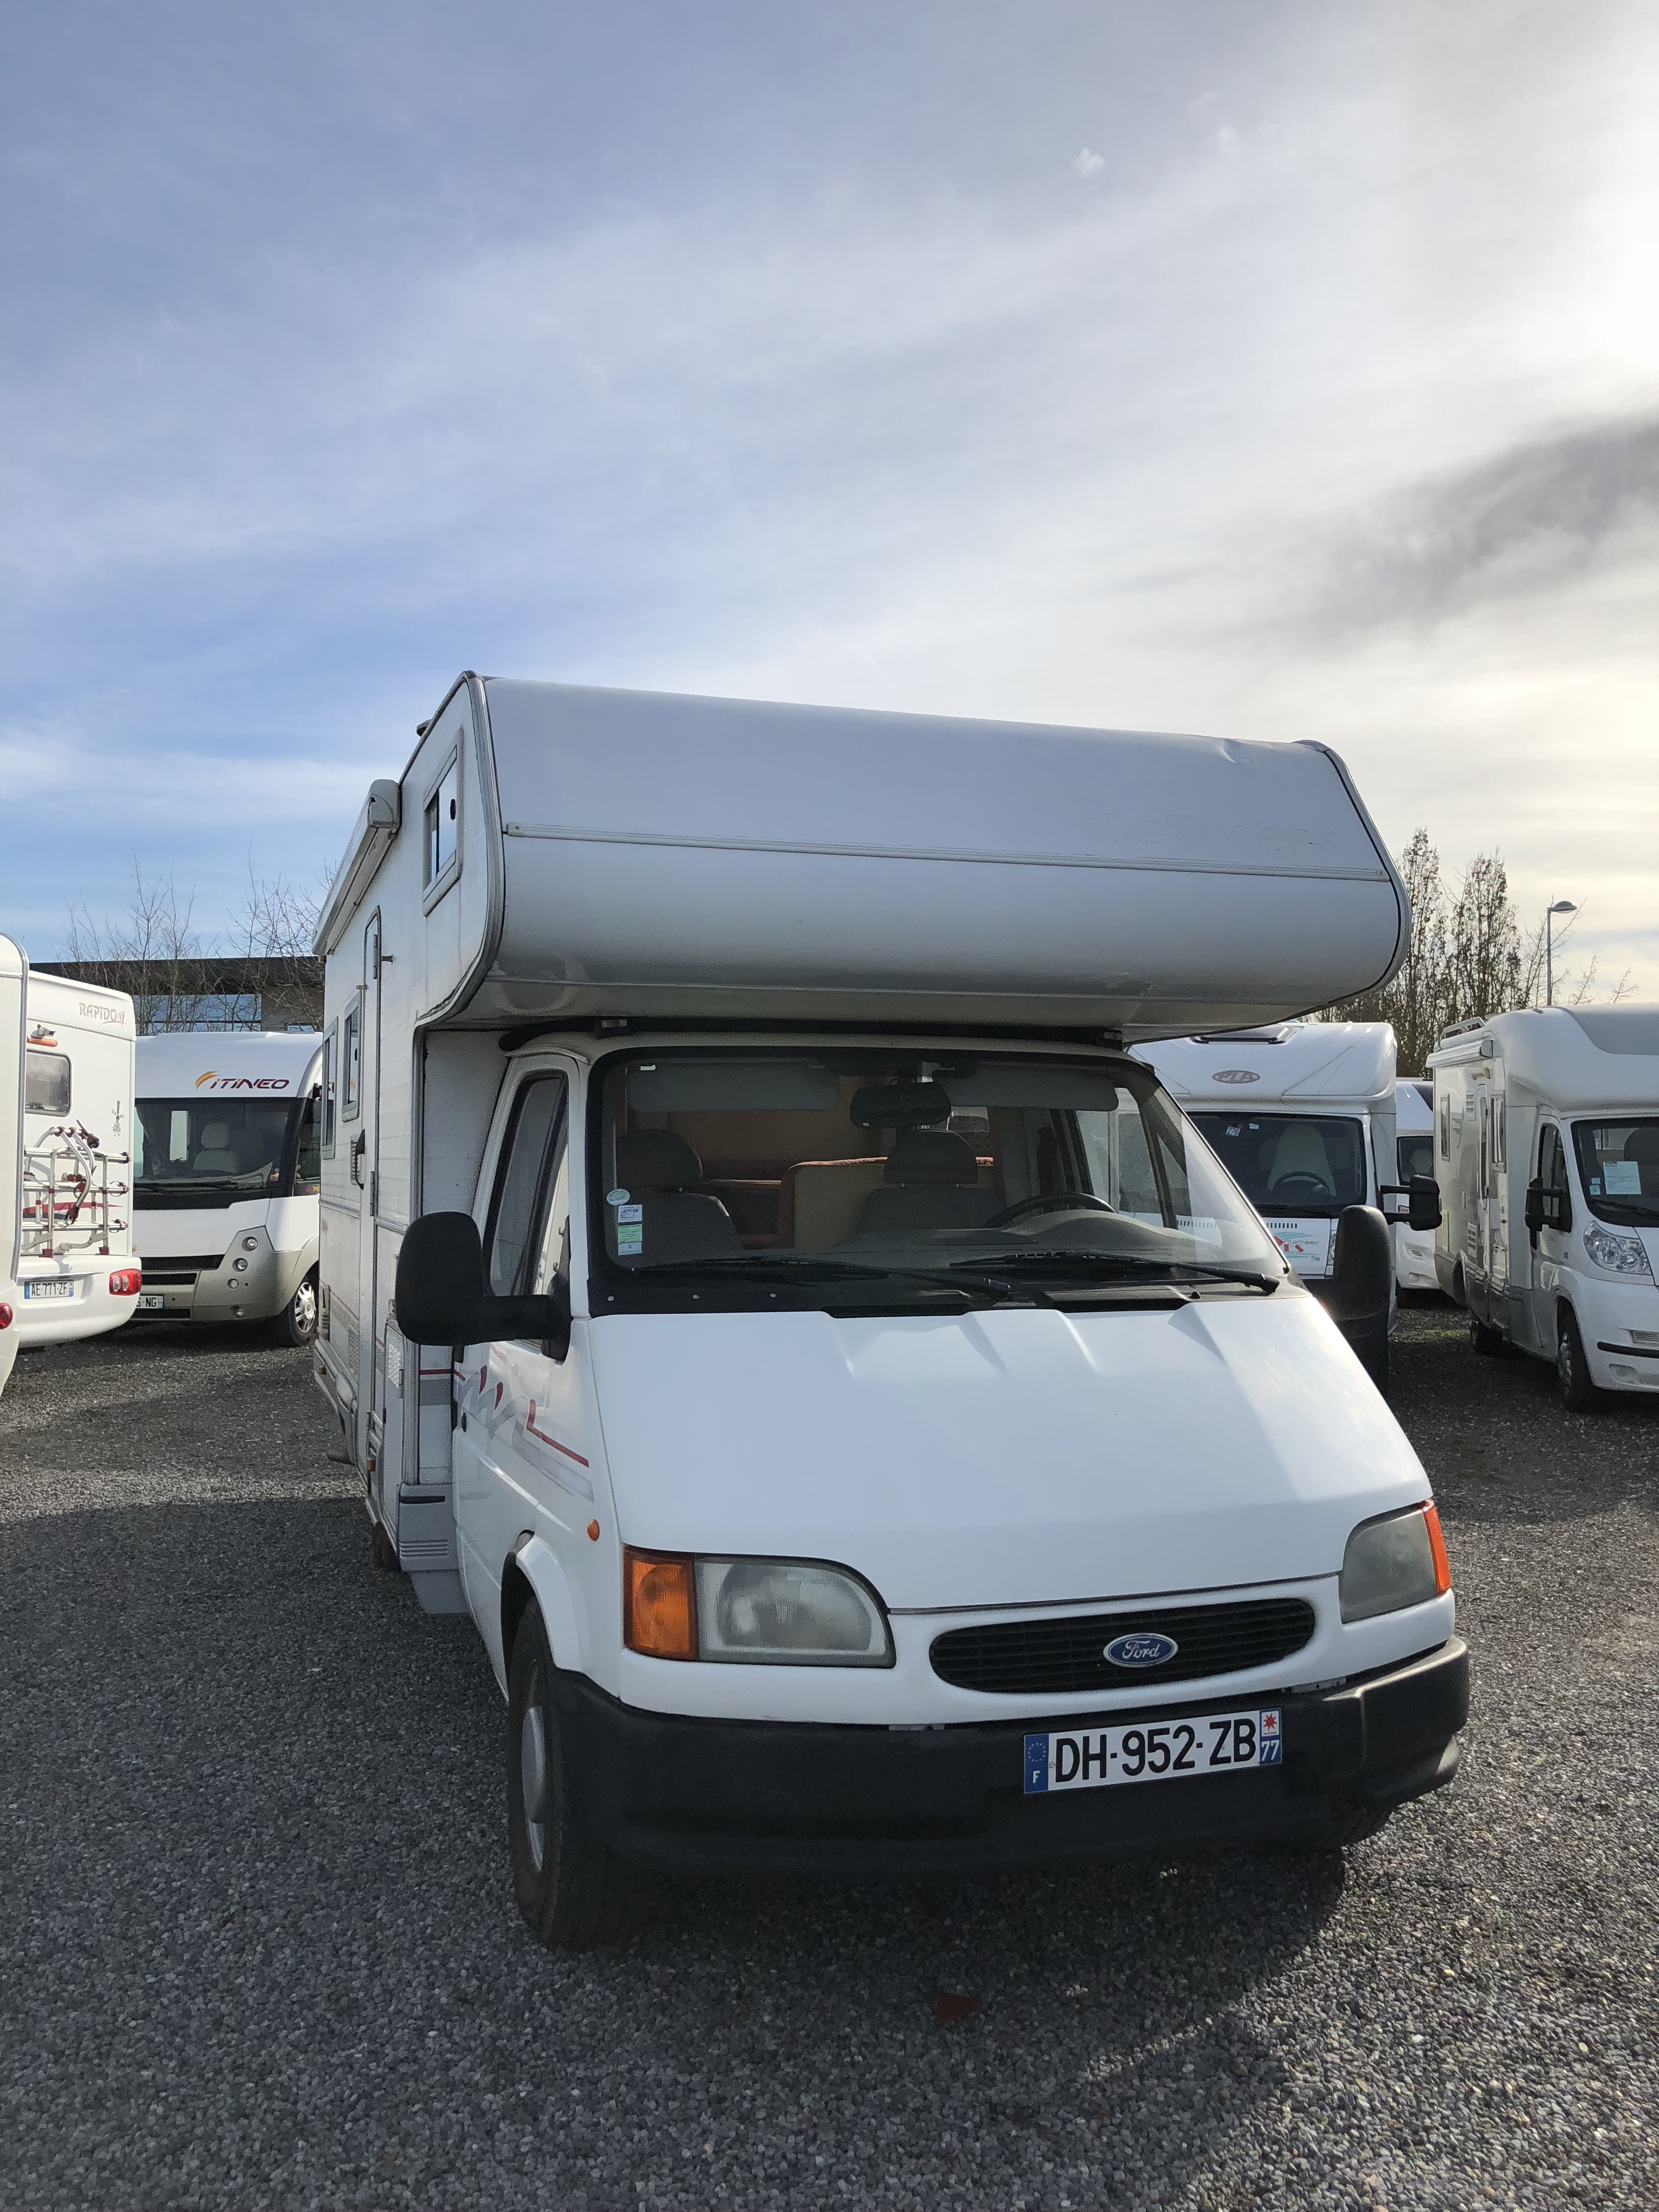 challenger 180 occasion de 1997 ford camping car en vente saint fargeau ponthierry seine. Black Bedroom Furniture Sets. Home Design Ideas